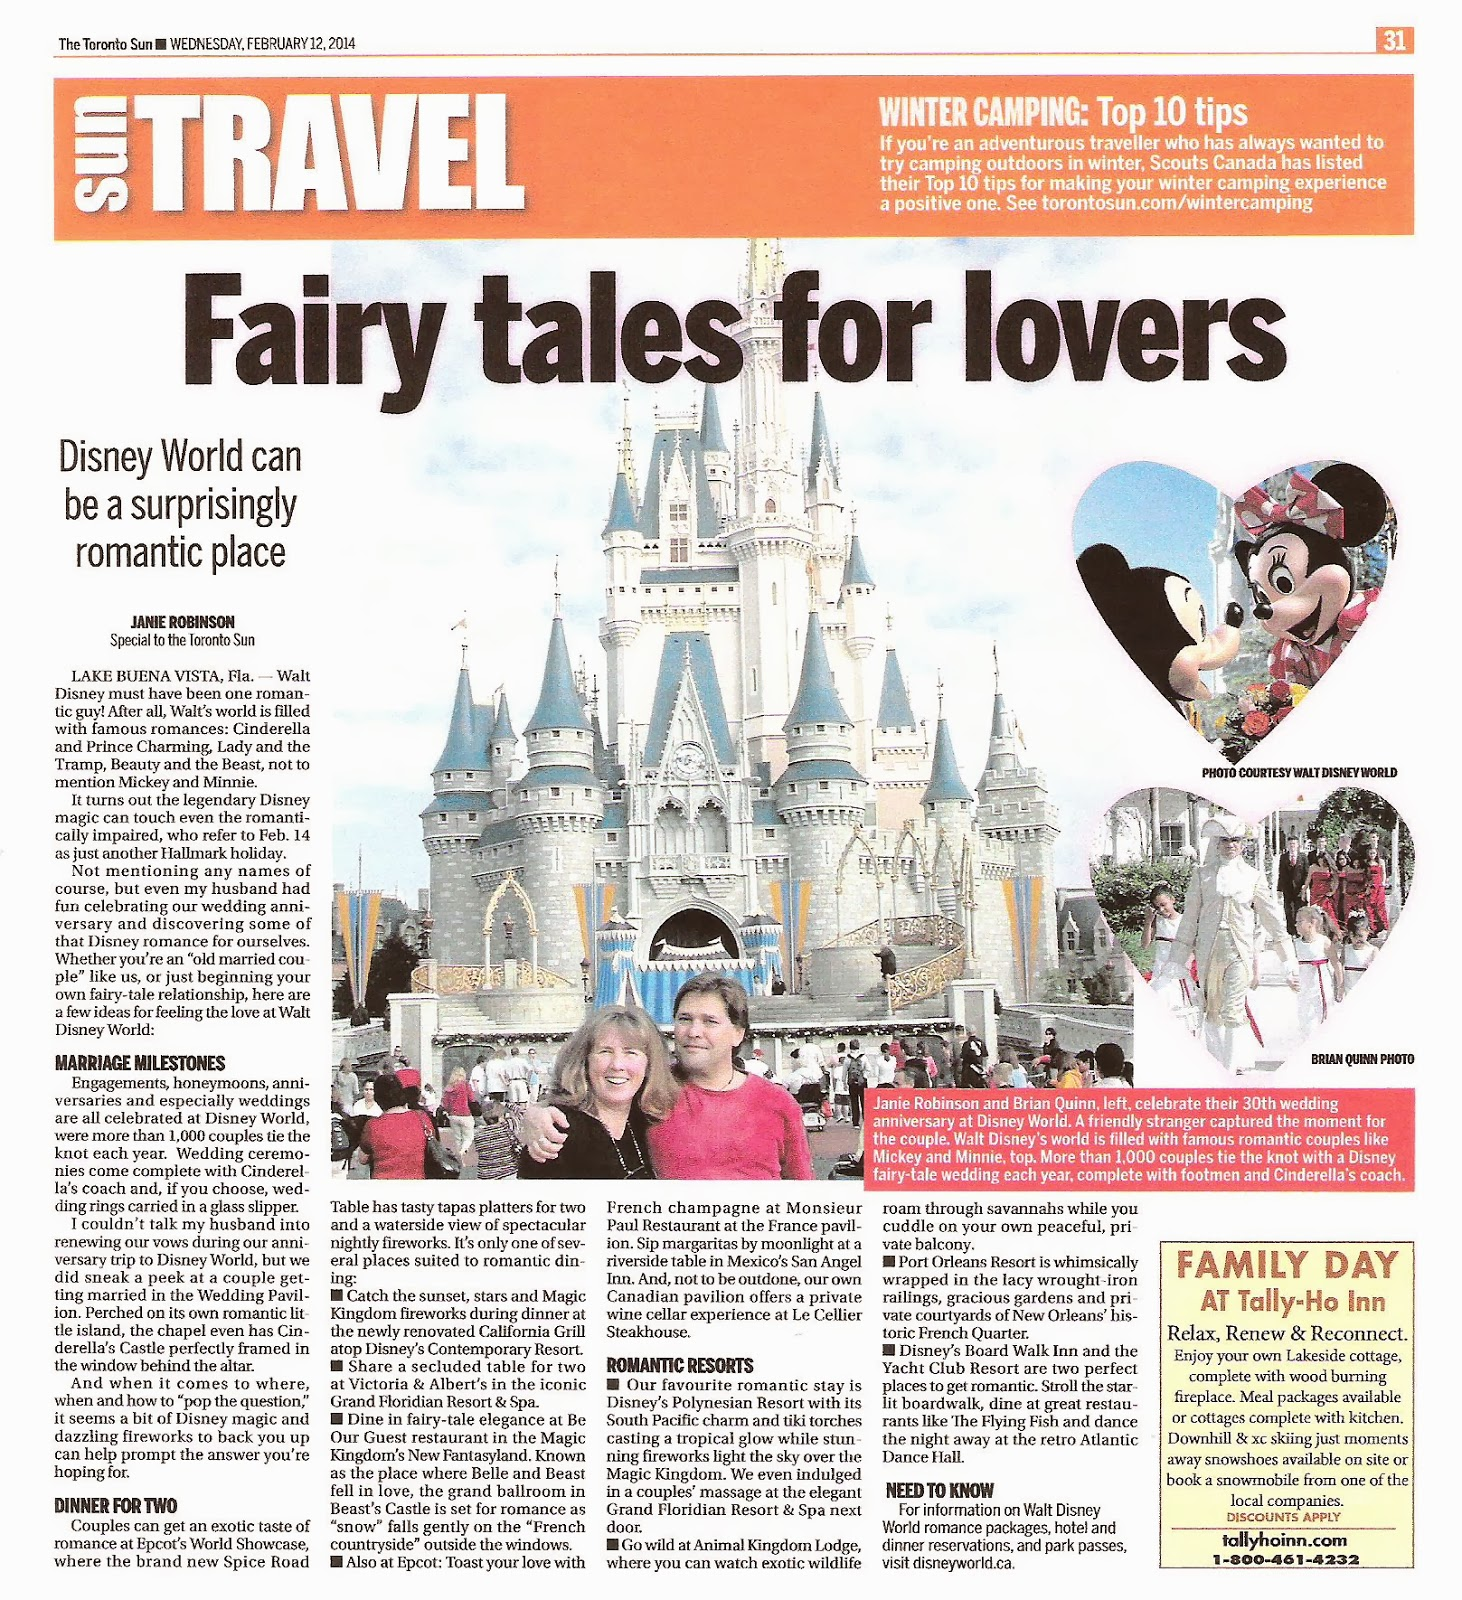 Valentine's Trip Disney World. Story photographs by Brian Quinn and Janie Robinson, Travel Writers